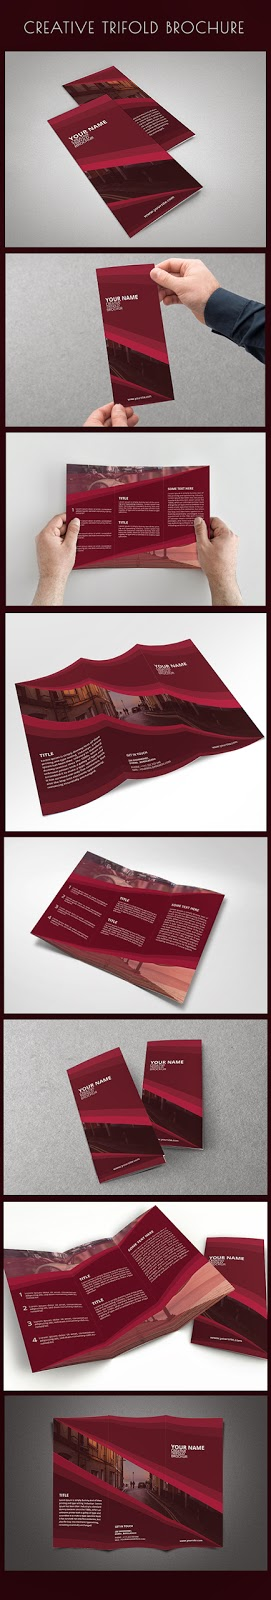 Free PSD Creative Trifold Brochure